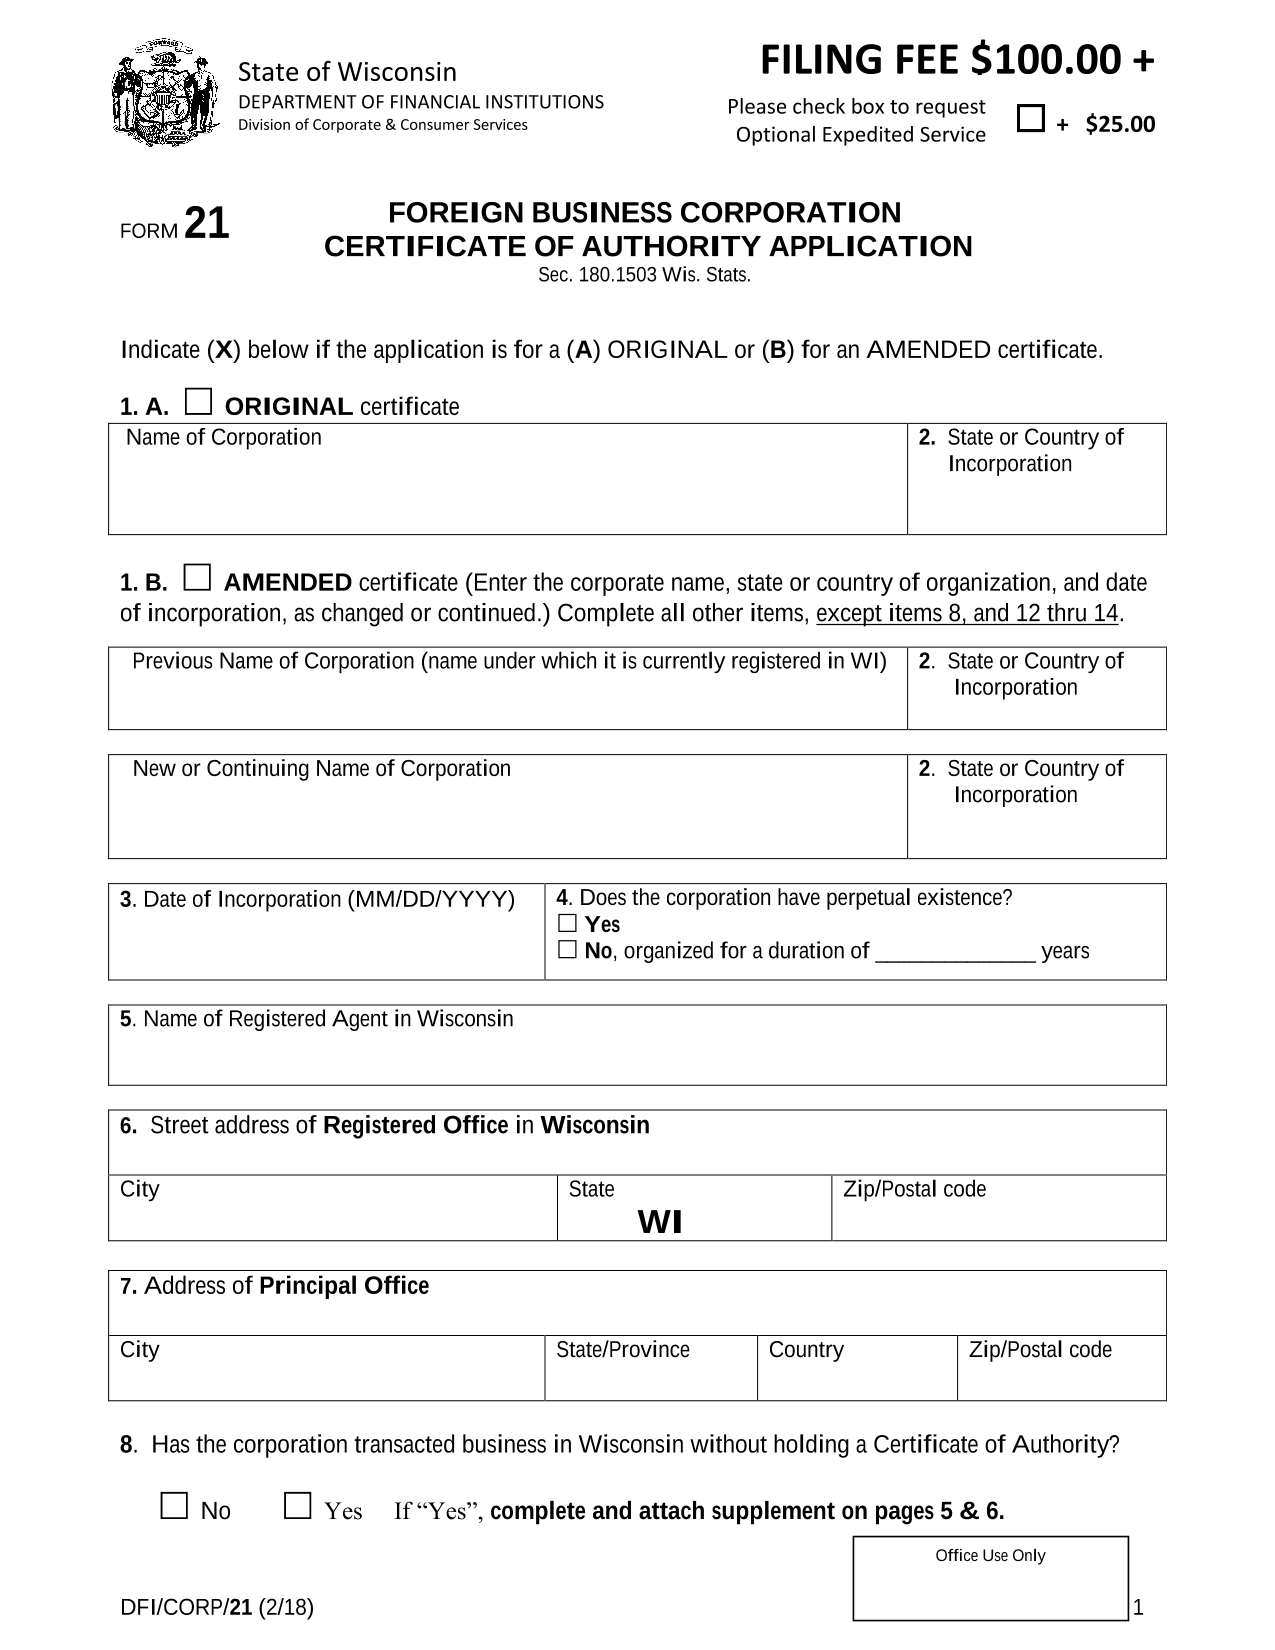 wisconsin-foreign-corporation-certificate-of-authority-application